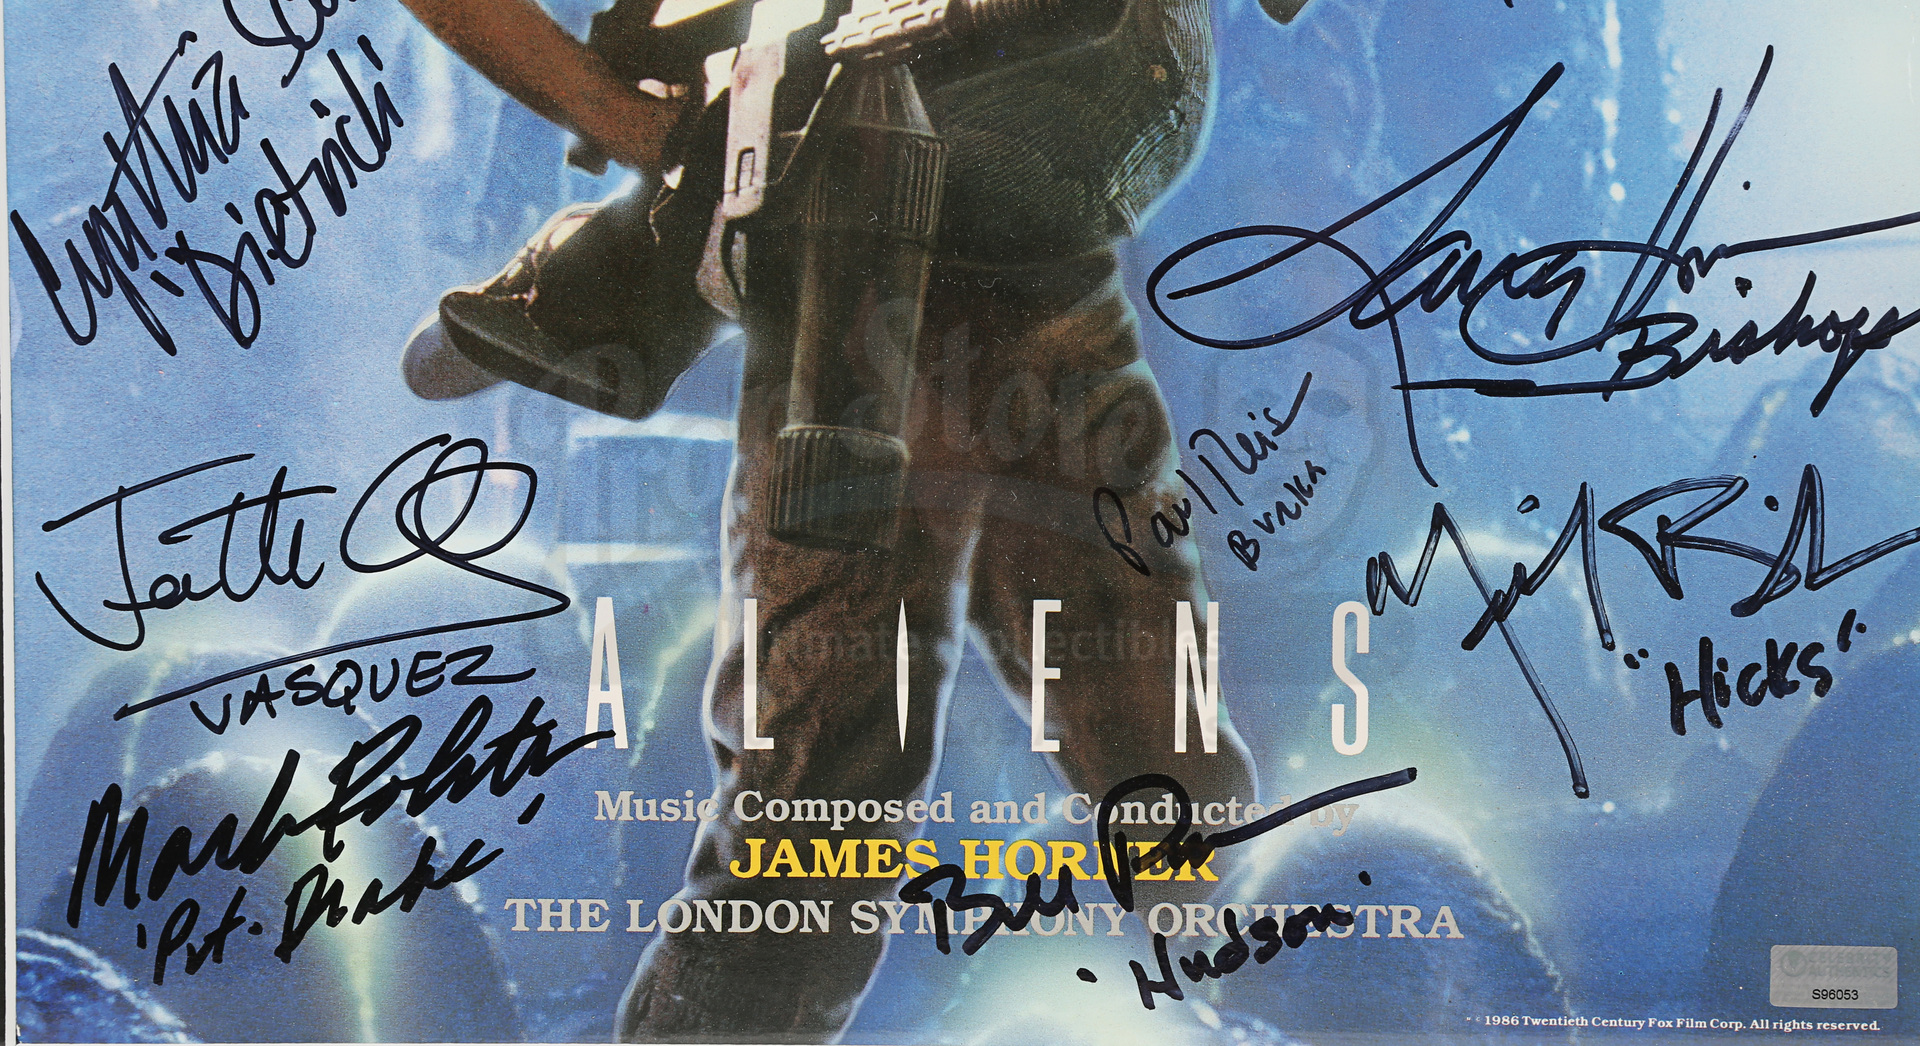 ALIENS (1986) - Framed Cast-Autographed Soundtrack Cover - Image 5 of 5